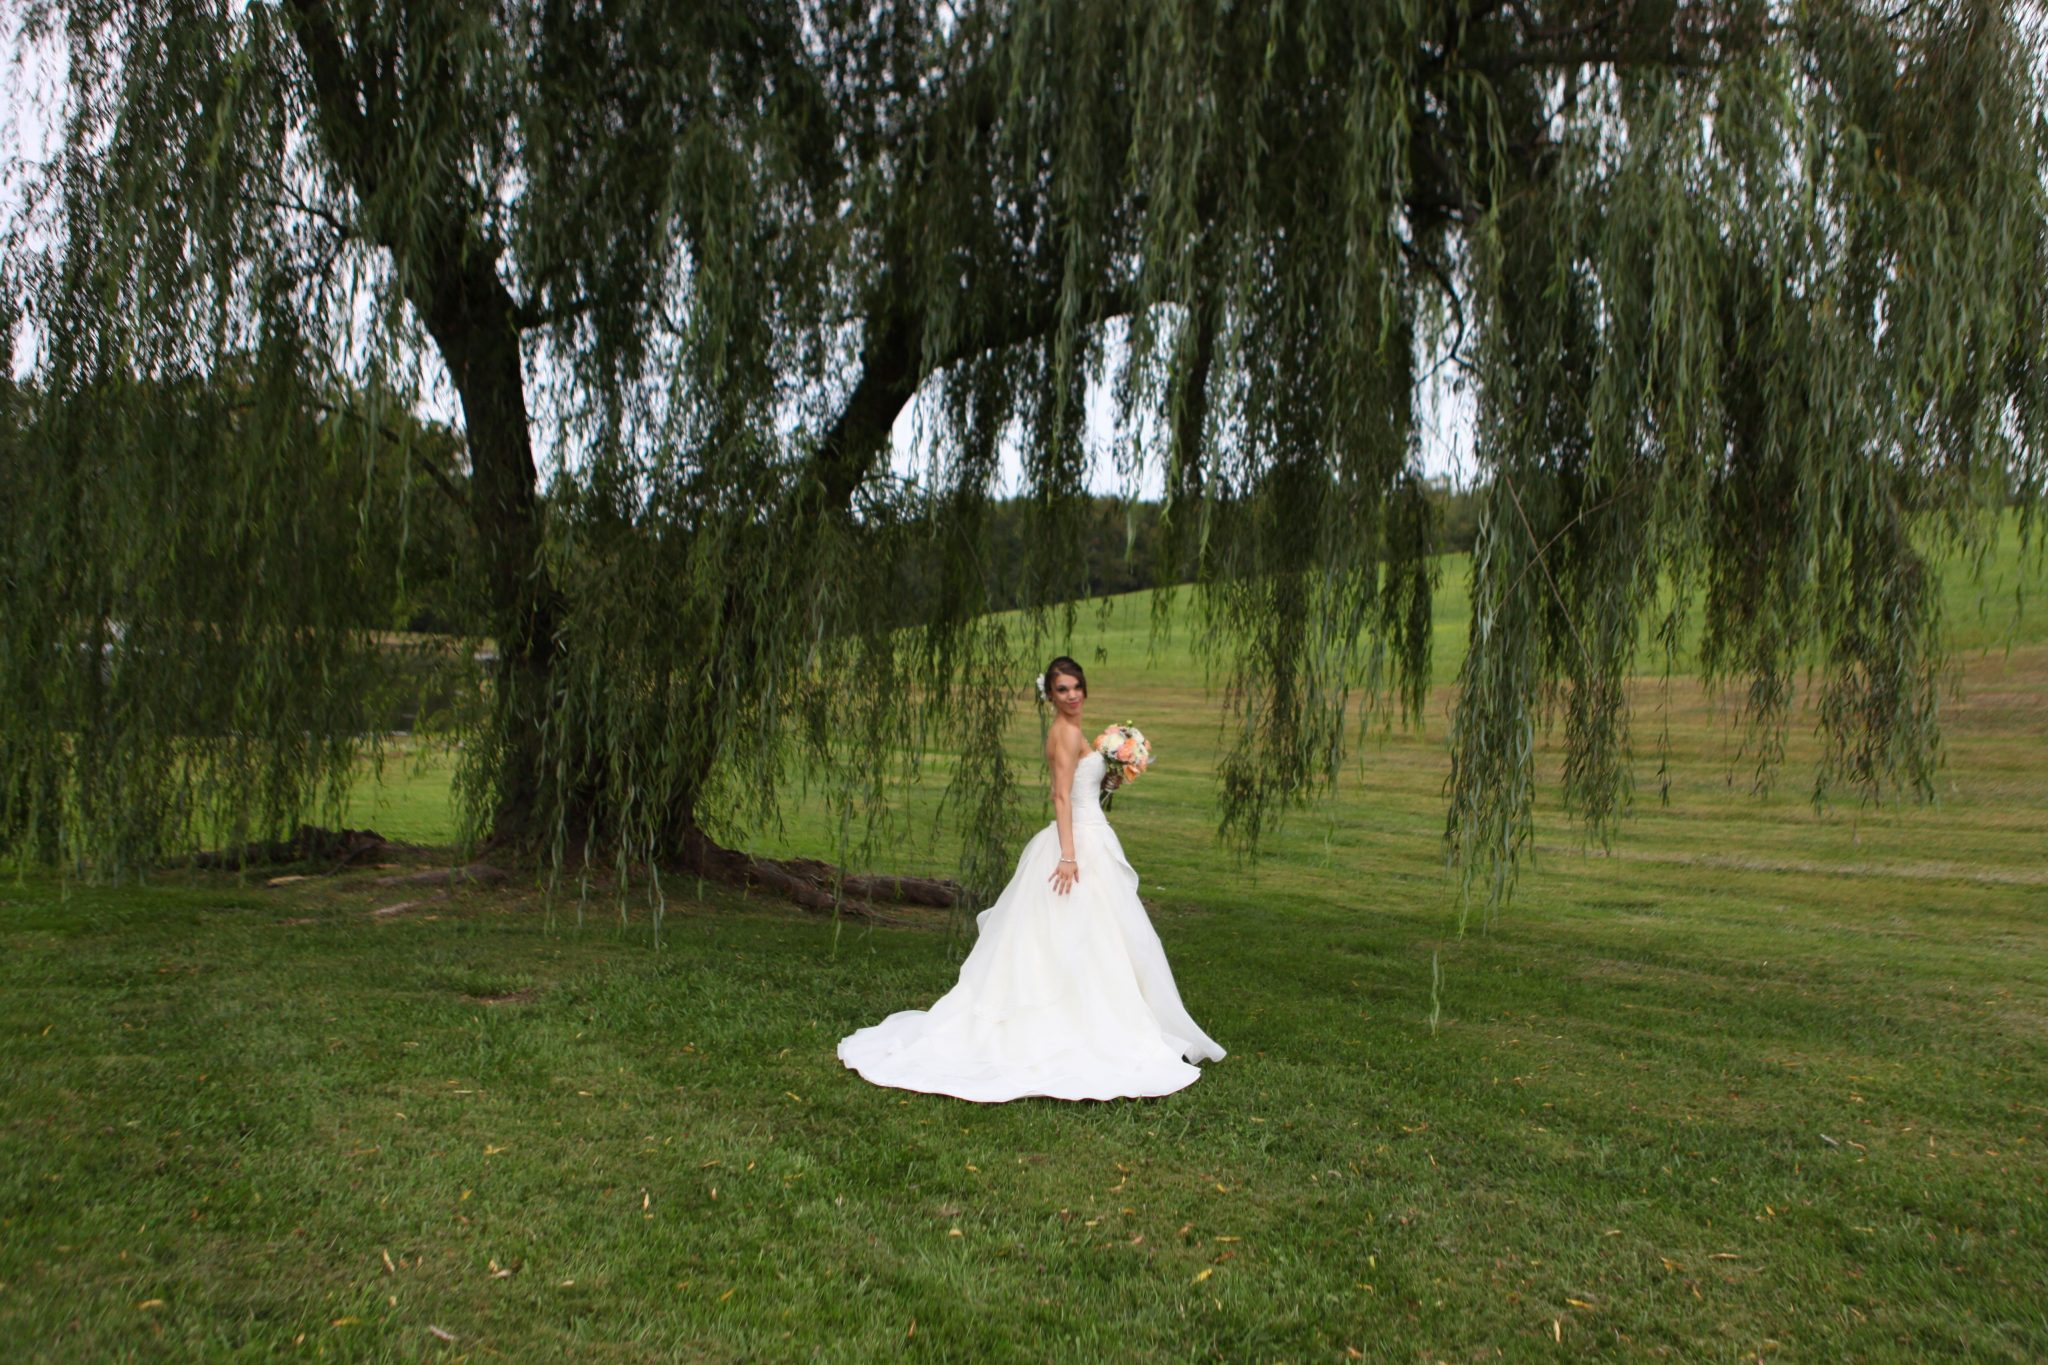 Bride under the willow tree